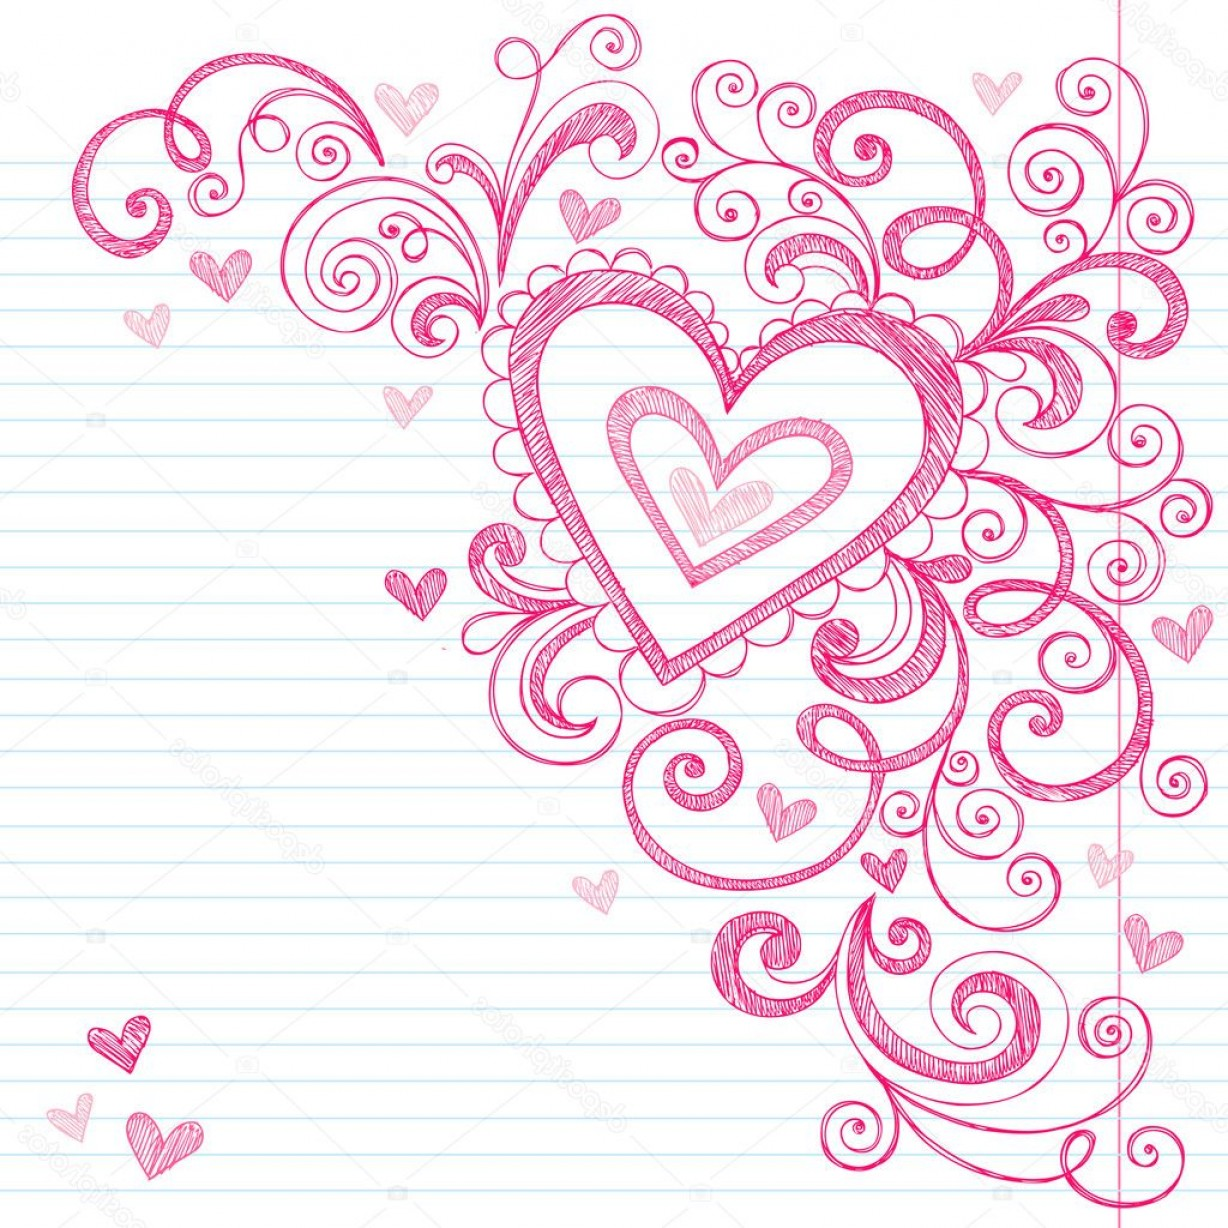 Love Heart Swirl Vector: Stock Illustration Hearts Sketchy Doodle Swirls Vector